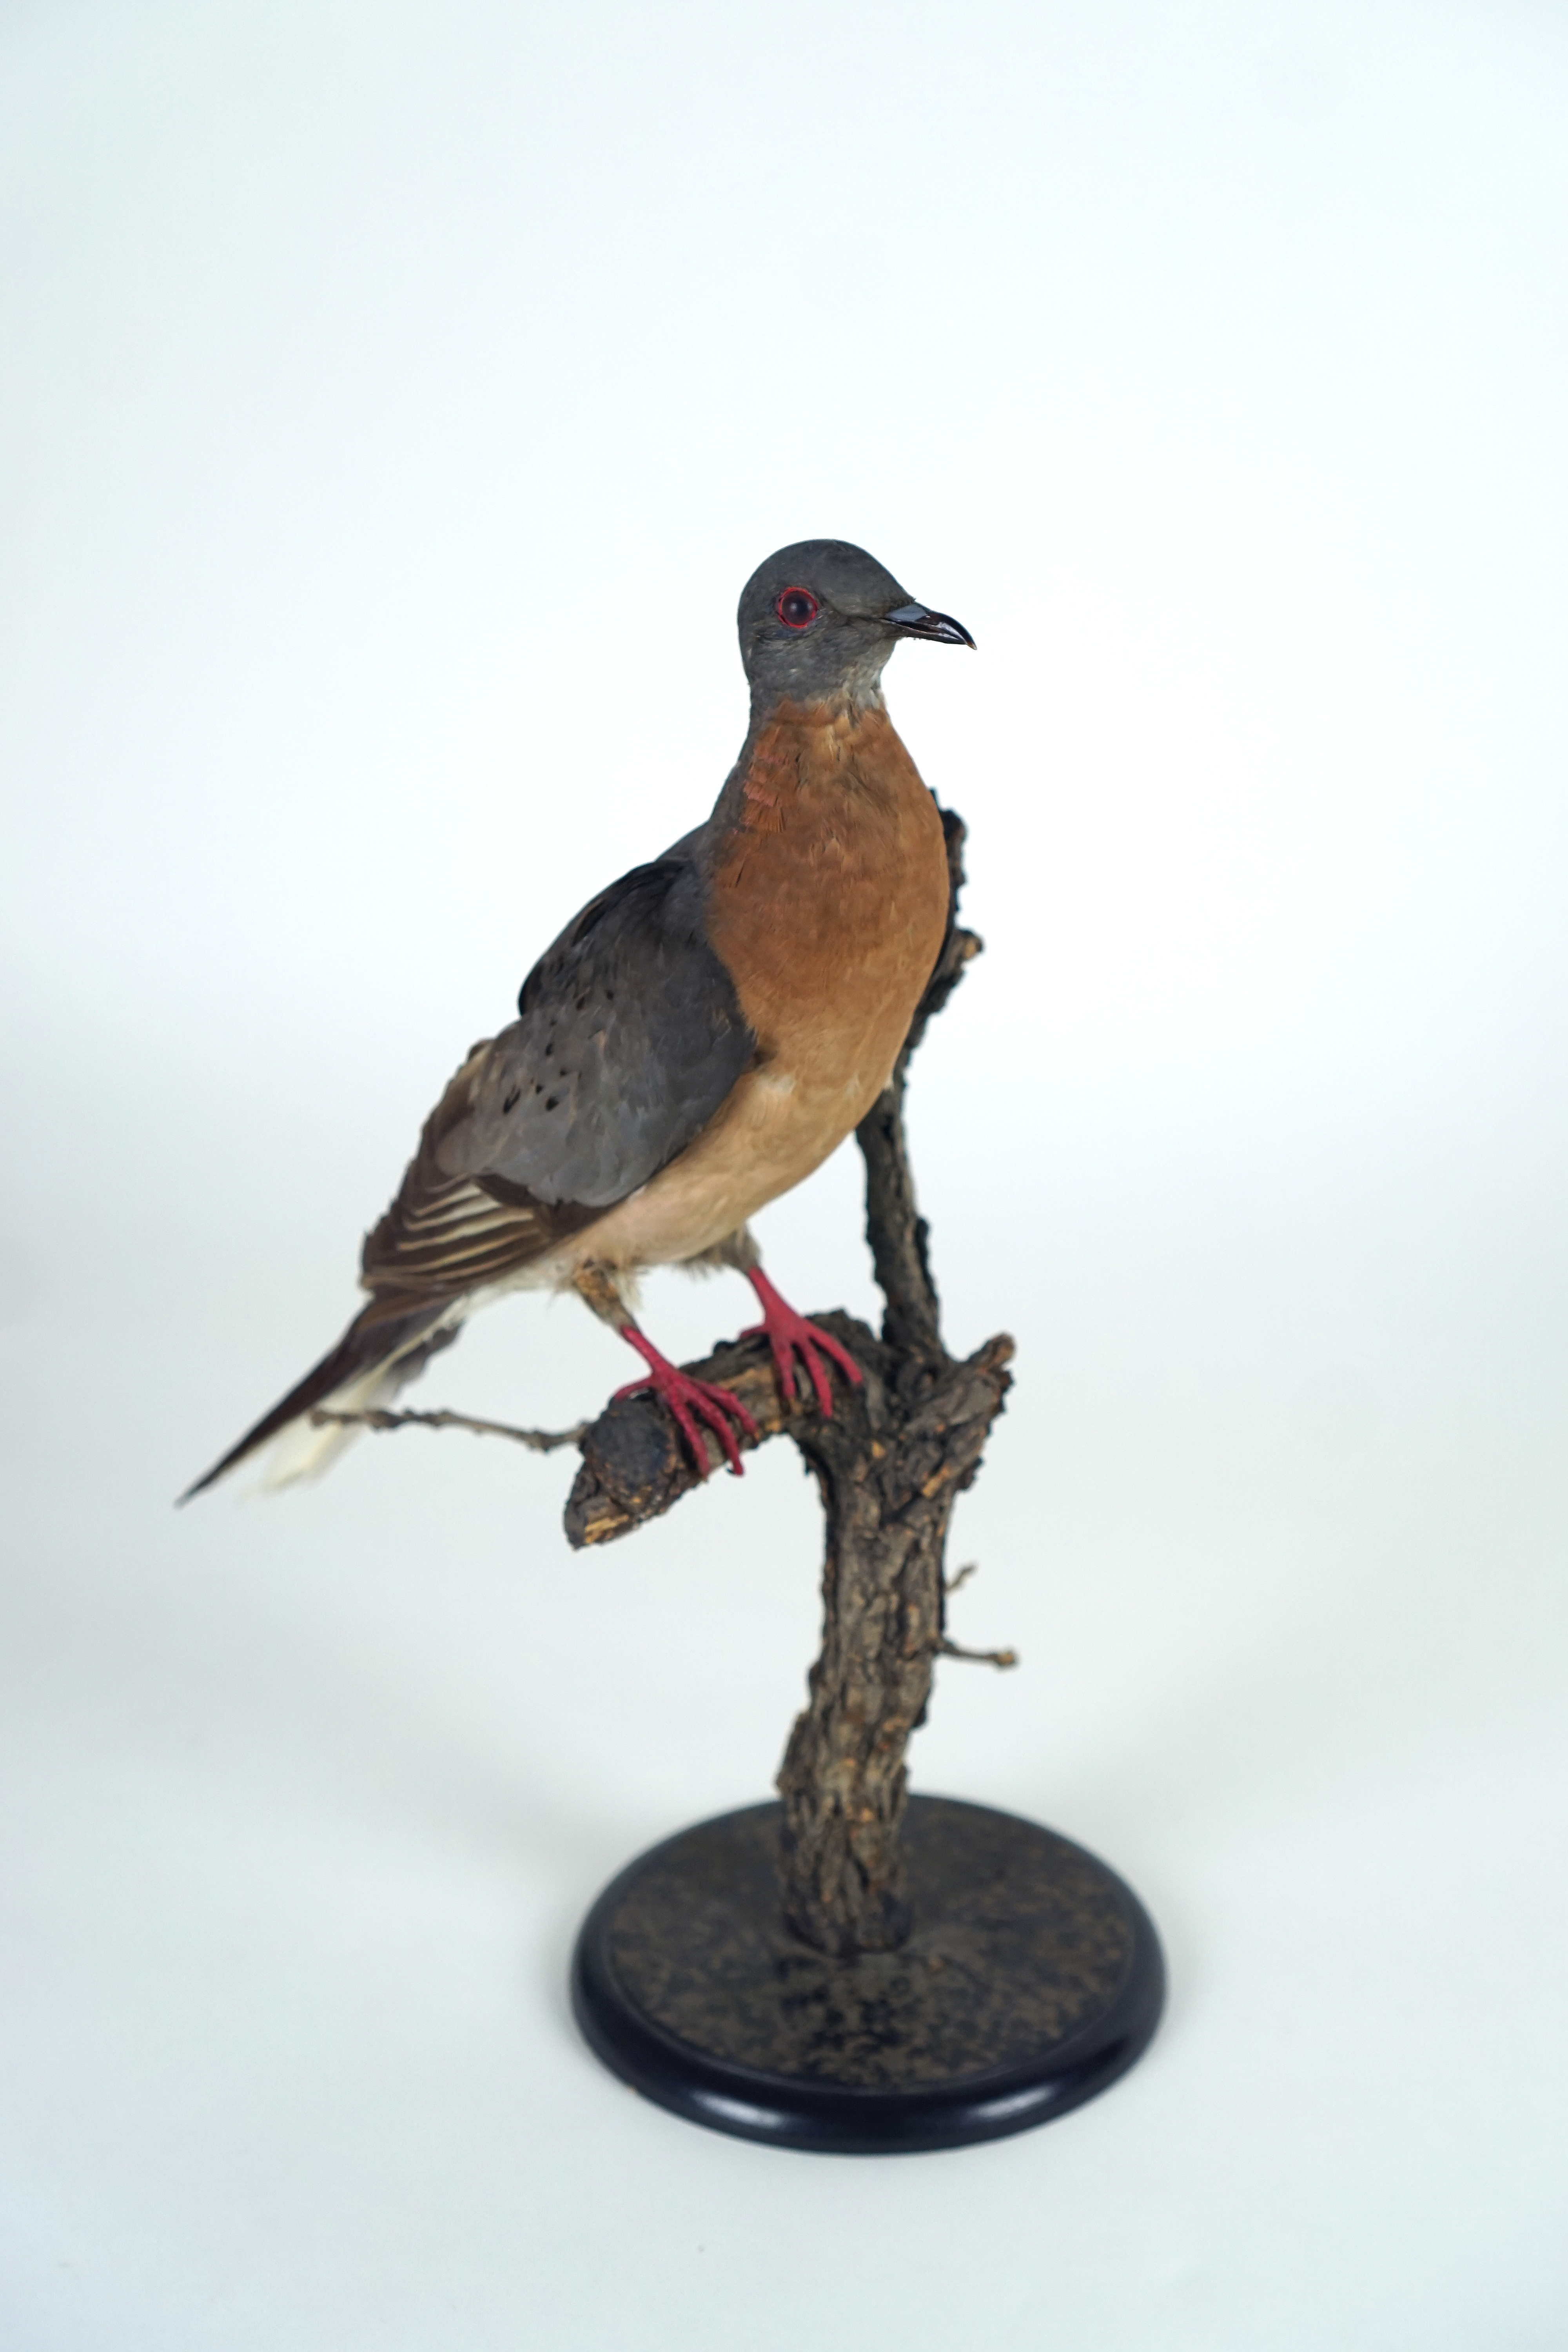 A taxidermy passenger pigeon on display.